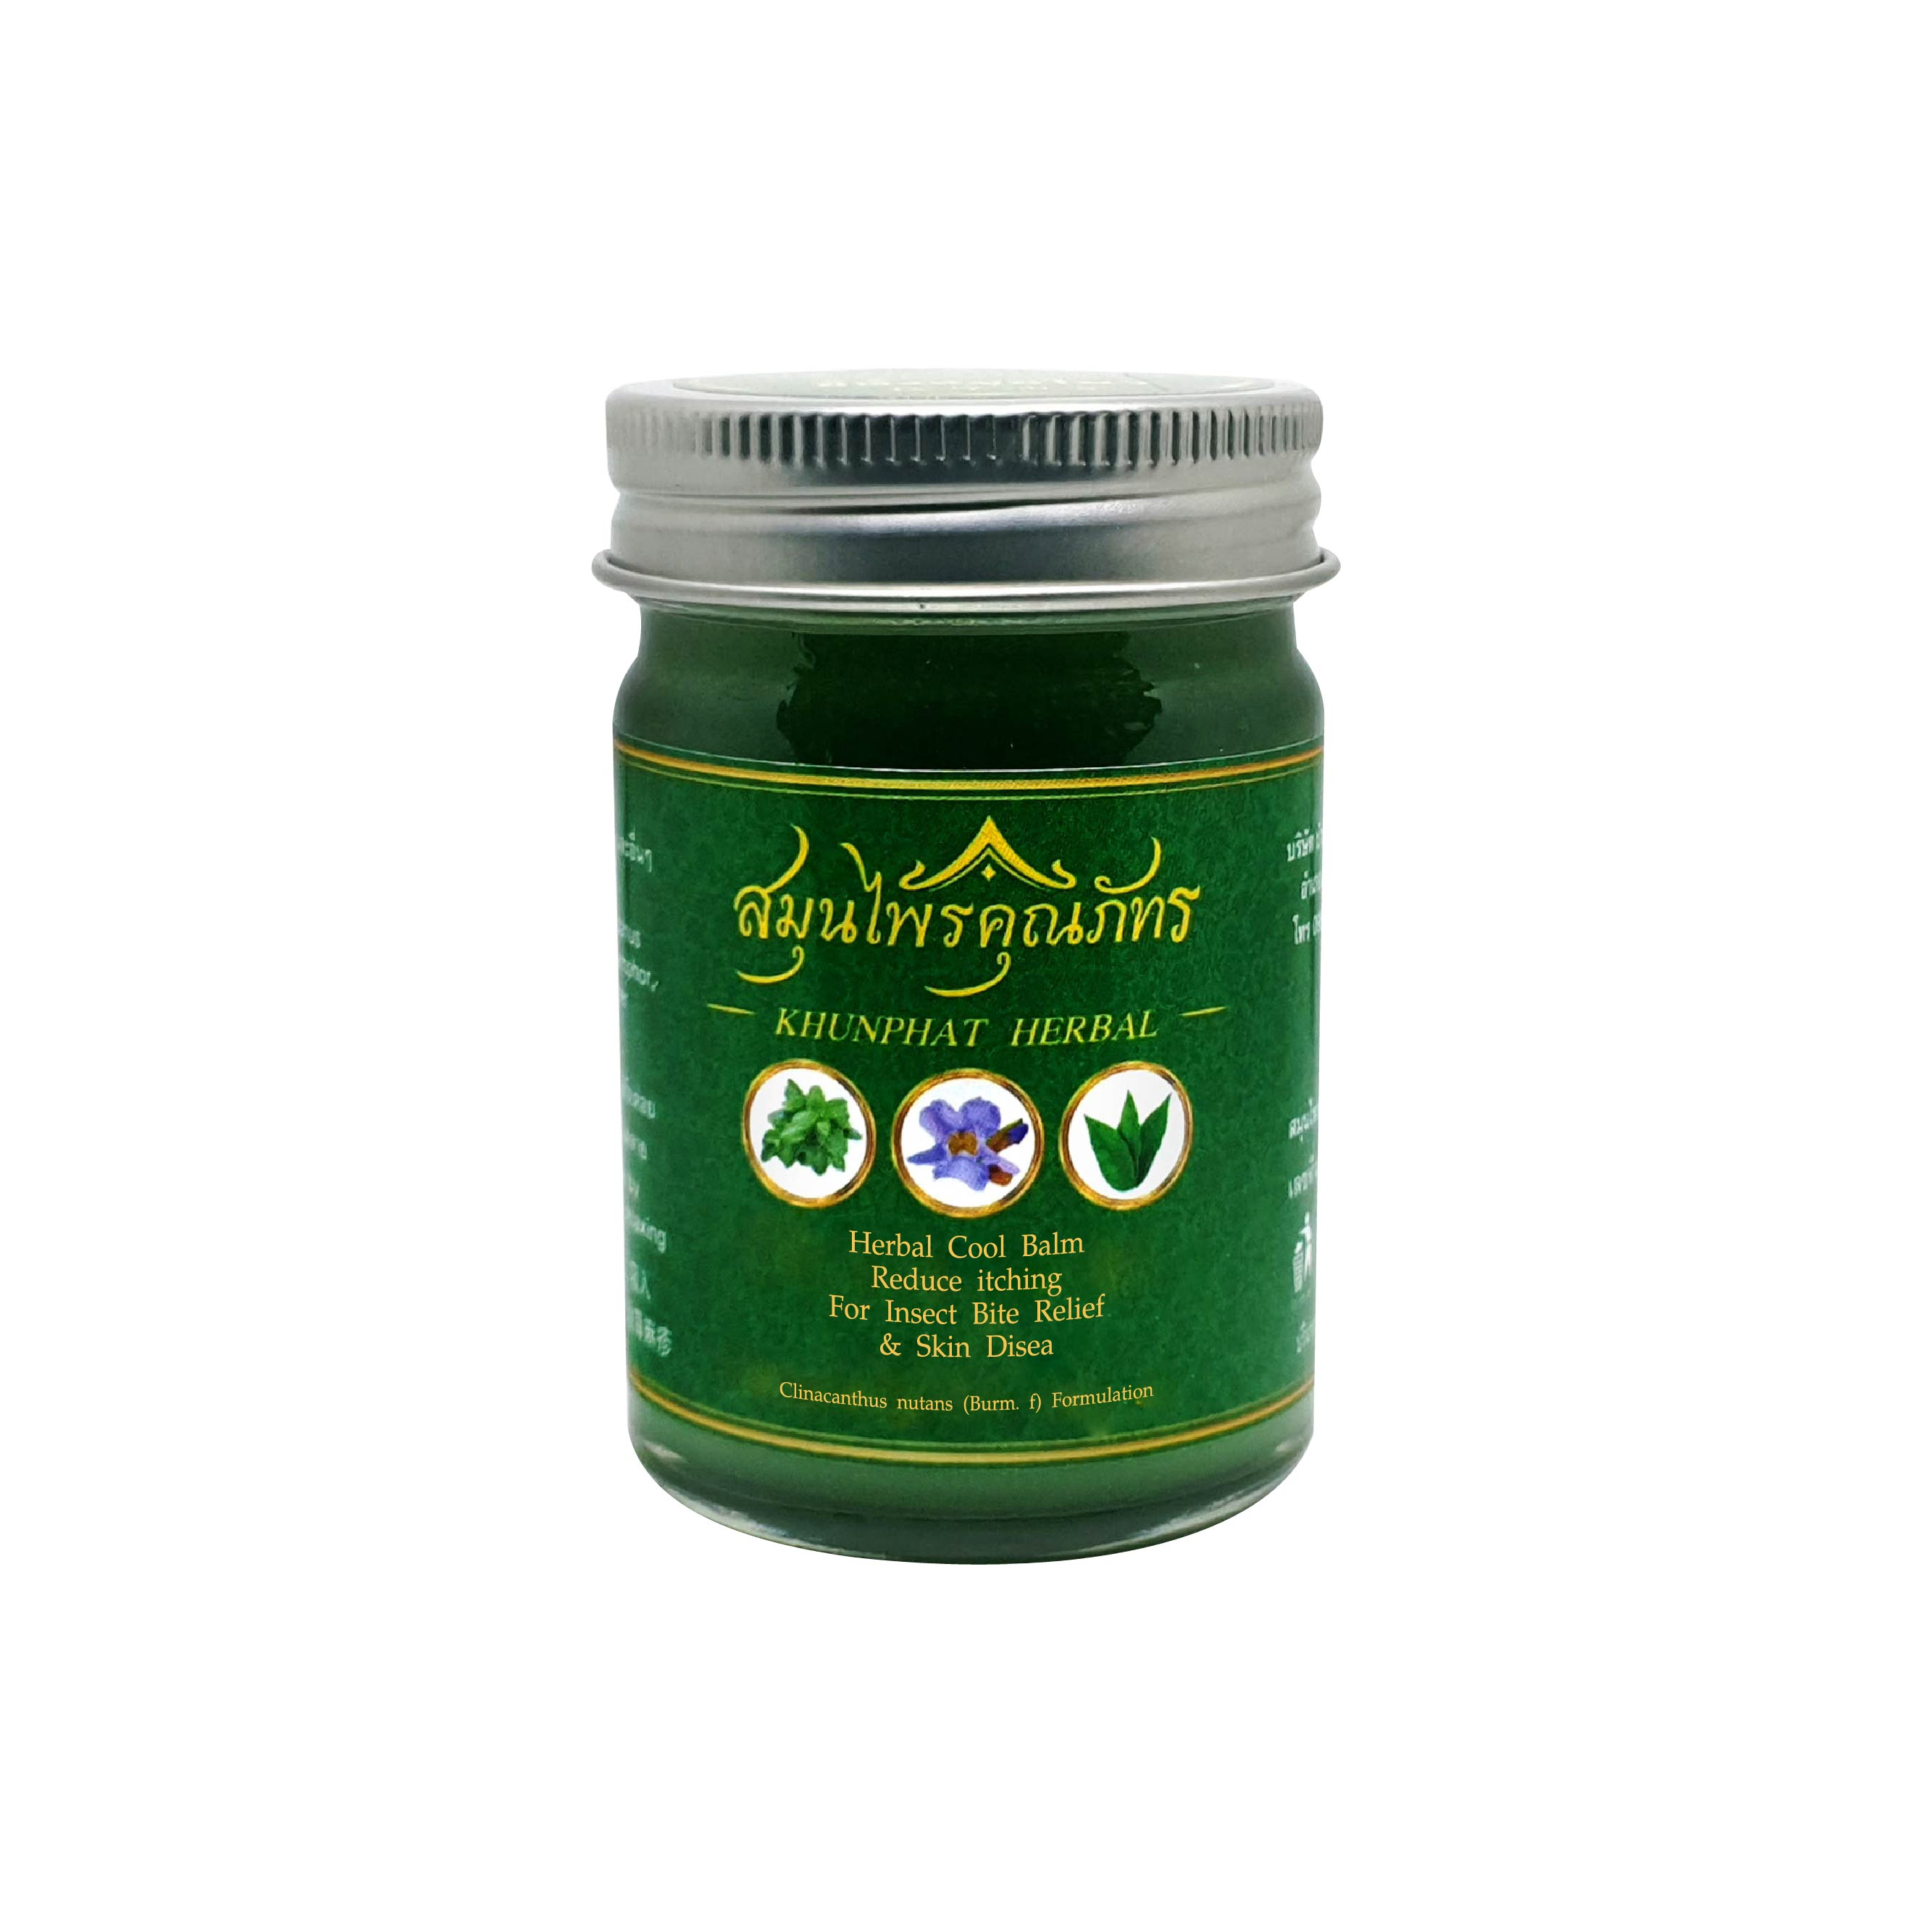 Herbal Moisturizing Balm Green Balm for anti-itching and insect bite relief